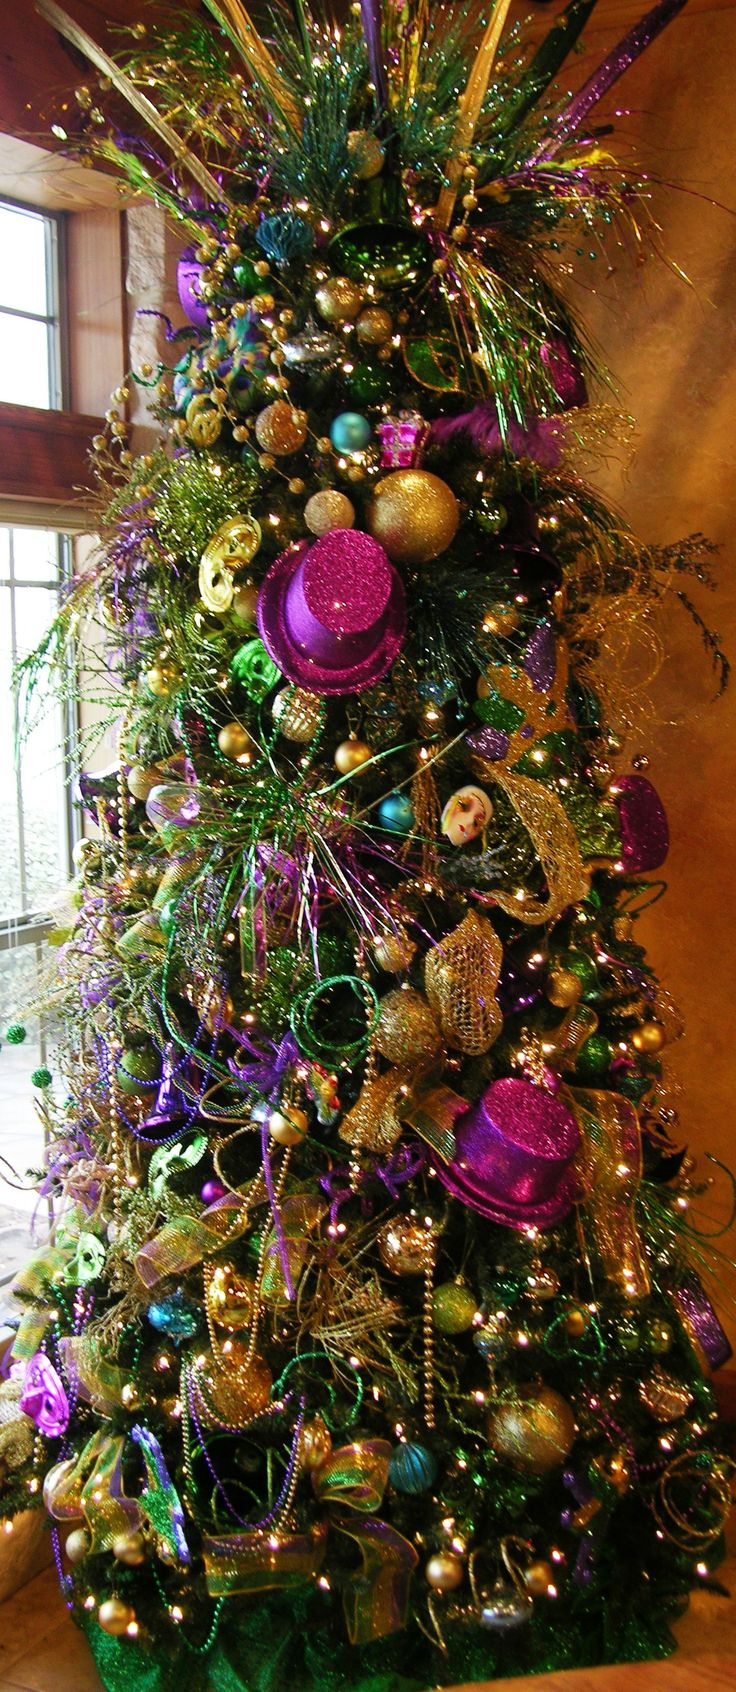 Decorated slim christmas trees ideas - Crazy That There Are People Who Do This Right After Christmas